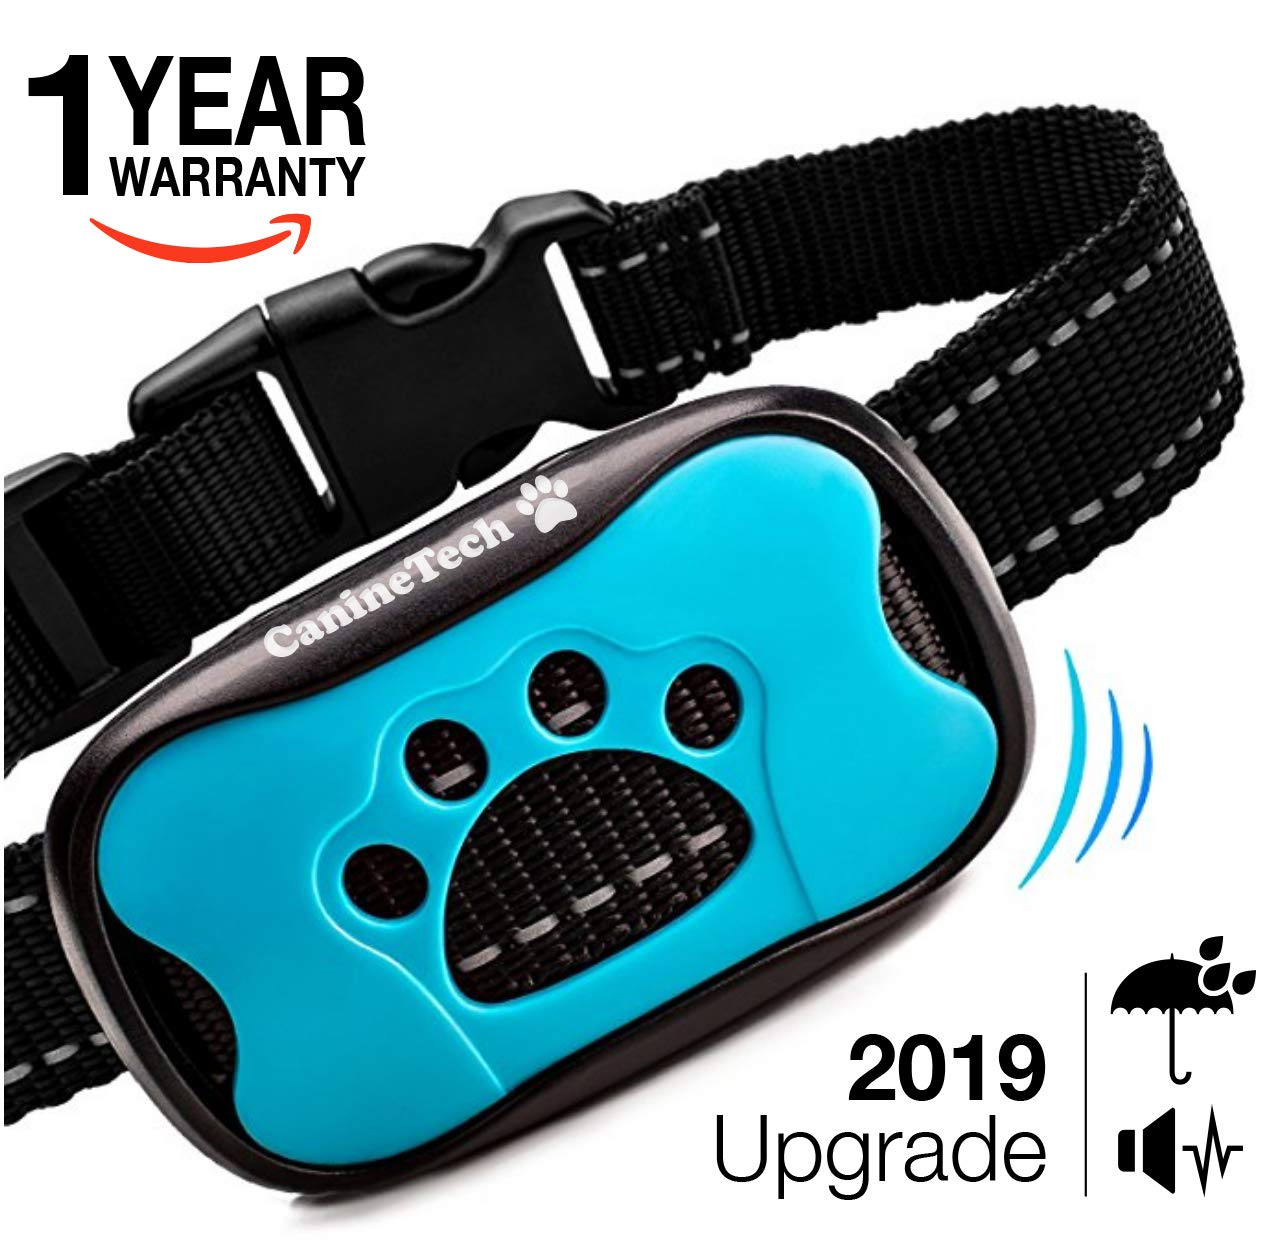 Advanced 4 in1 Anti Bark Dog Collar | Device to Stop Excessive Dog Barking WITHOUT ELECTRIC SHOCK! Anti-barking training with tone vibration for small medium sized breeds. HUMANE, SAFE and PAINLESS